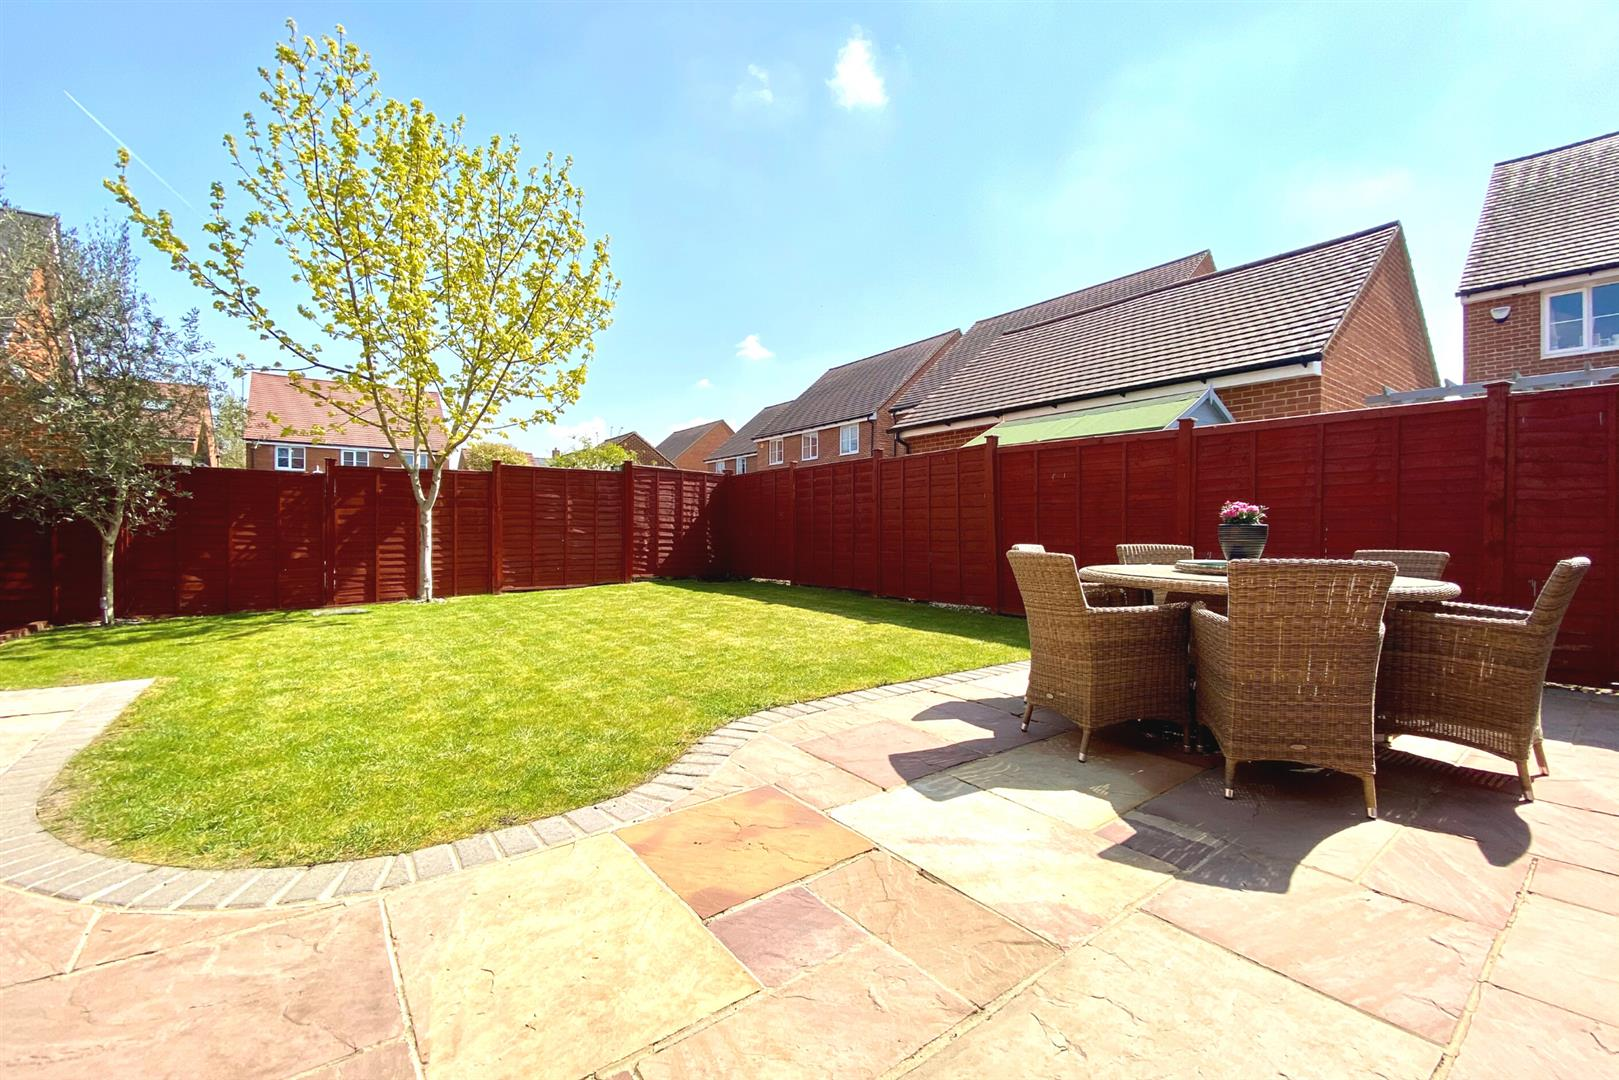 5 bed detached for sale in Three Mile Cross 2